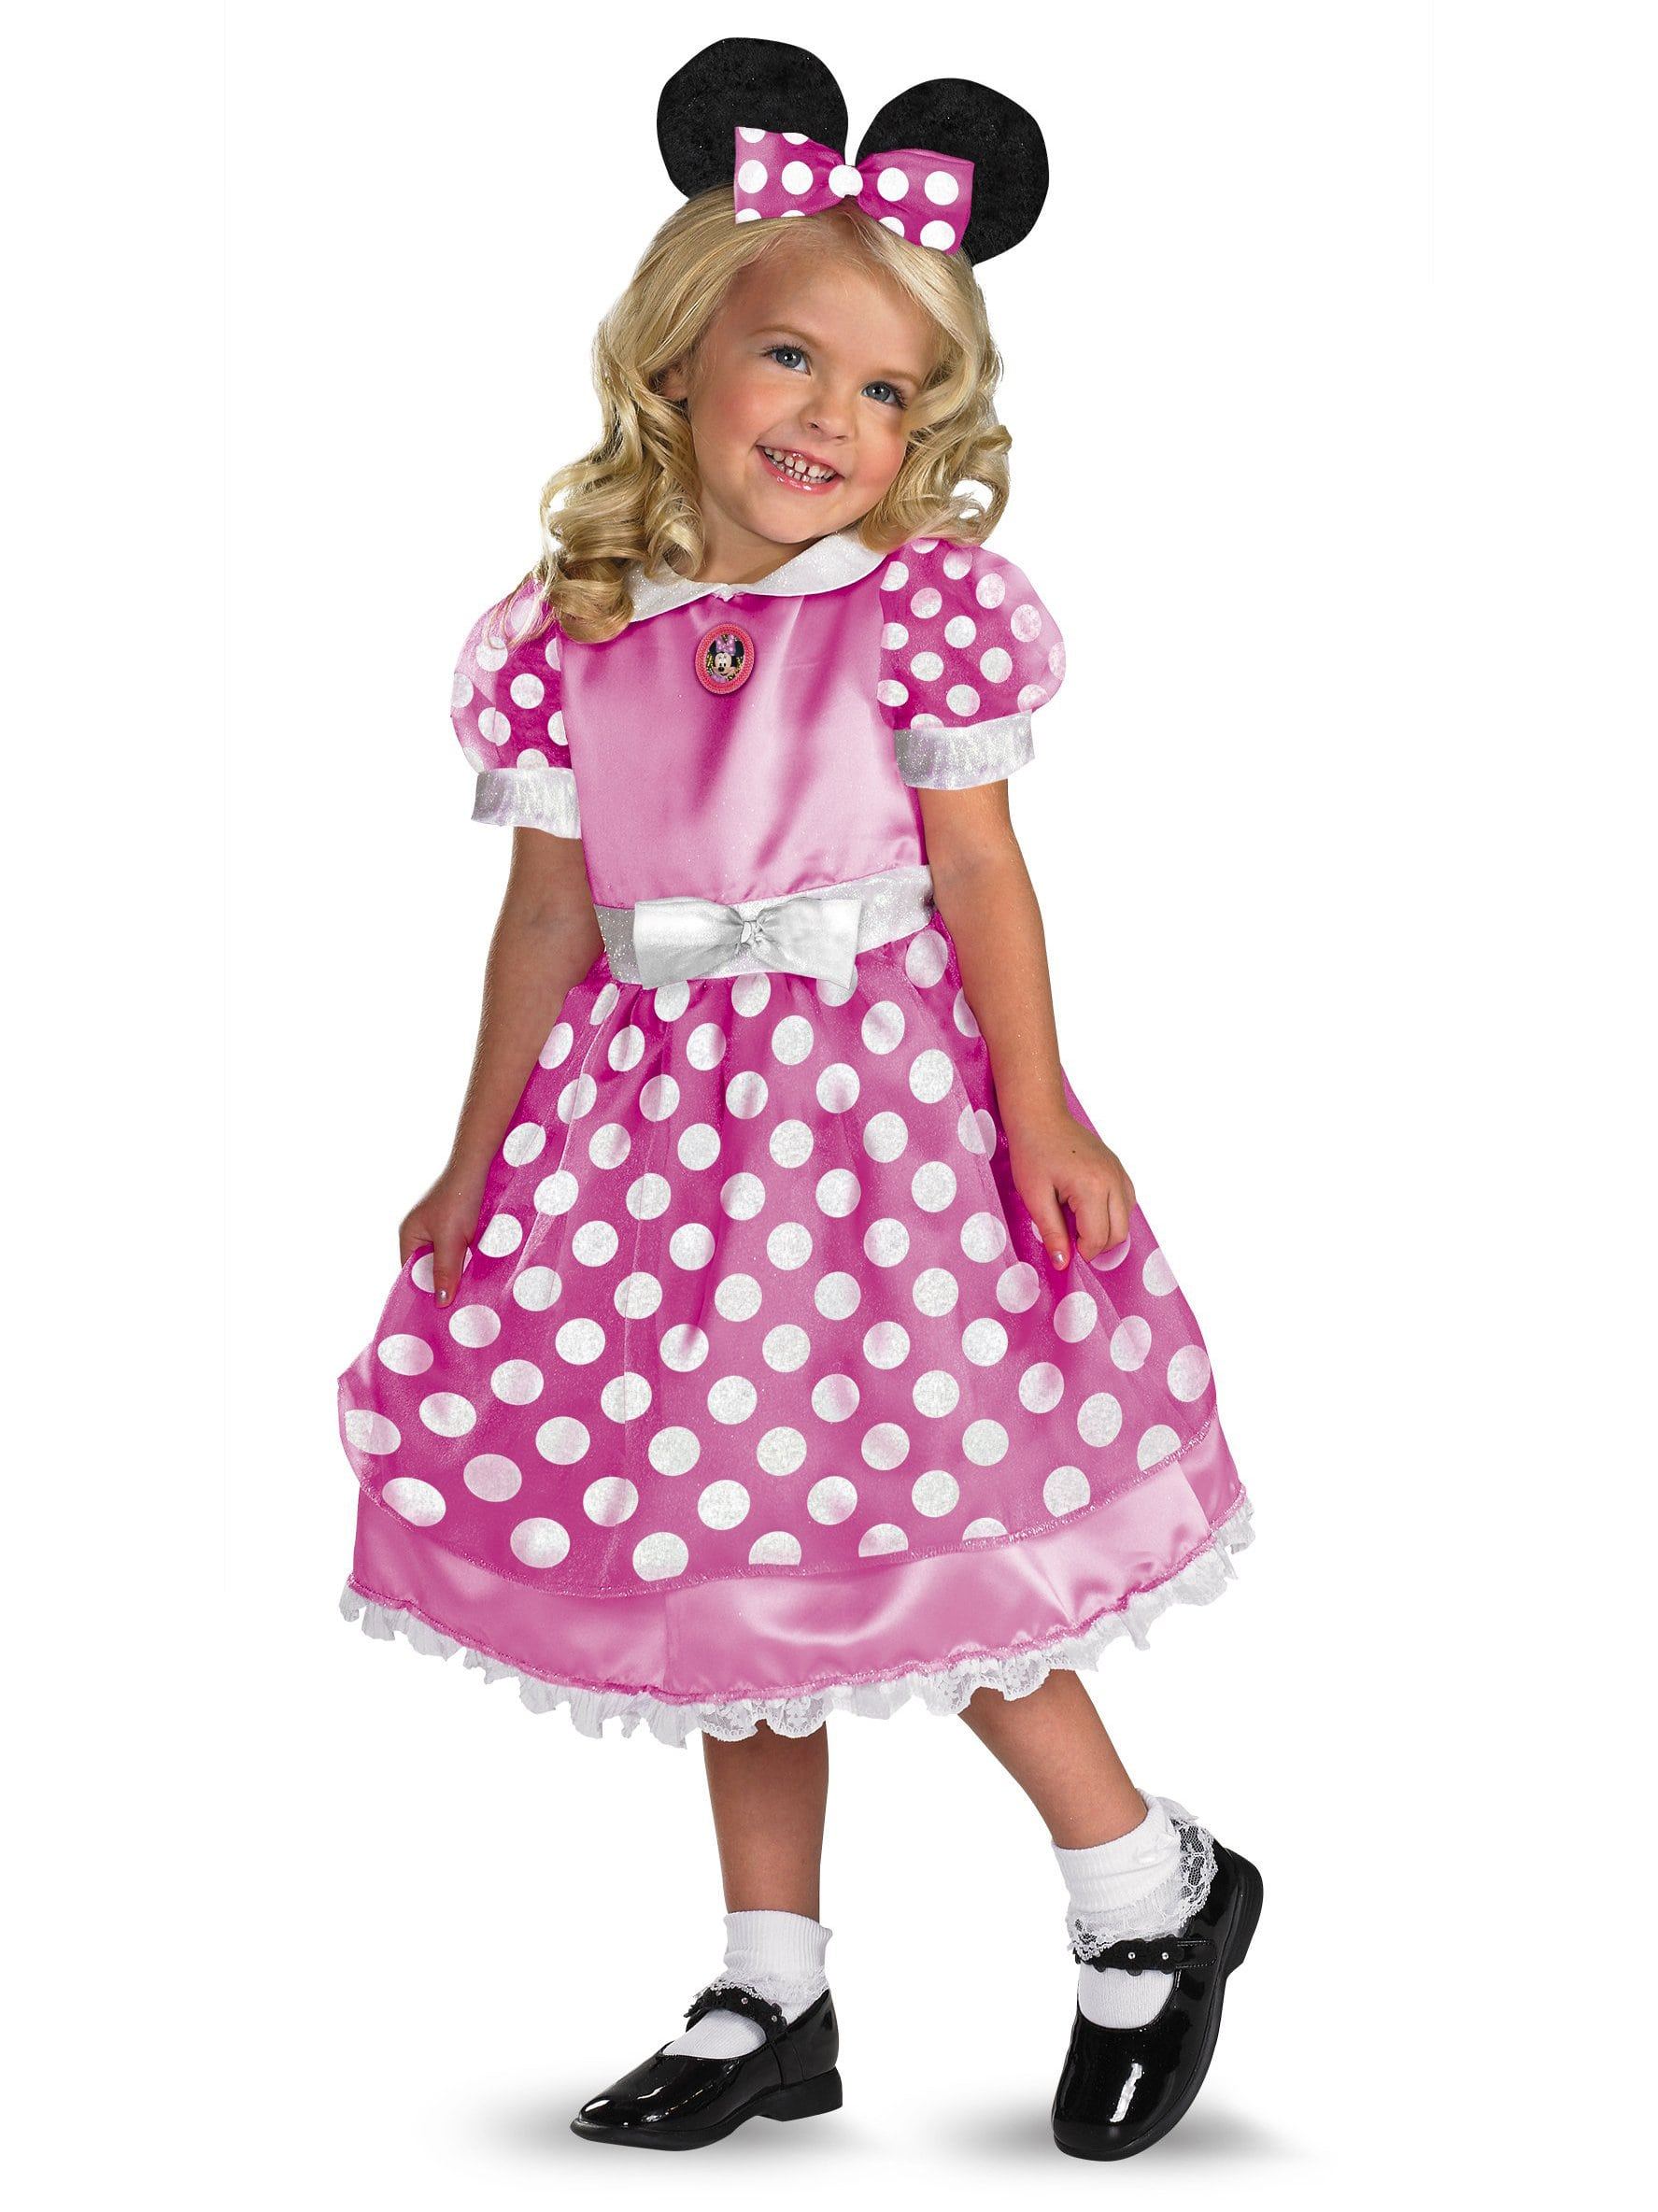 Clubhouse Minnie Mouse Pink Toddler / Child Costume - Baby Halloween Costumes | BuyCostumes.com  sc 1 st  BuyCostumes.com & Clubhouse Minnie Mouse Pink Toddler / Child Costume - Baby Halloween ...